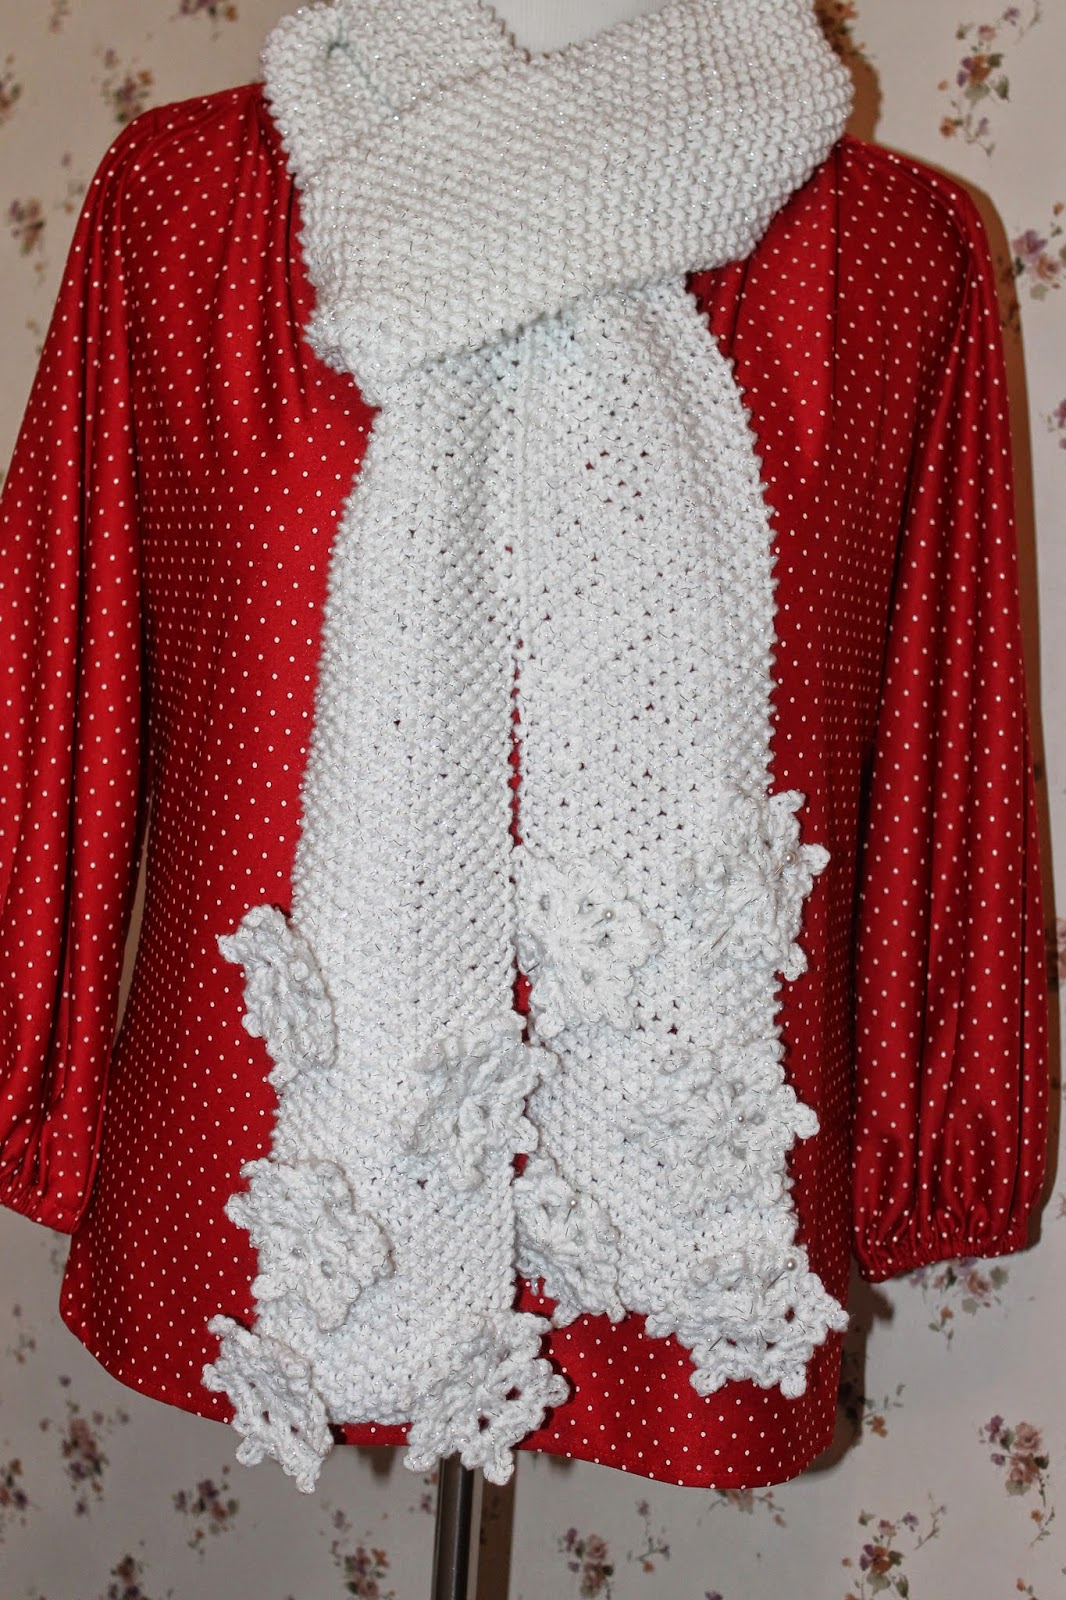 Forget-Me-Not: Knitted Scarf With Crocheted Snowflakes